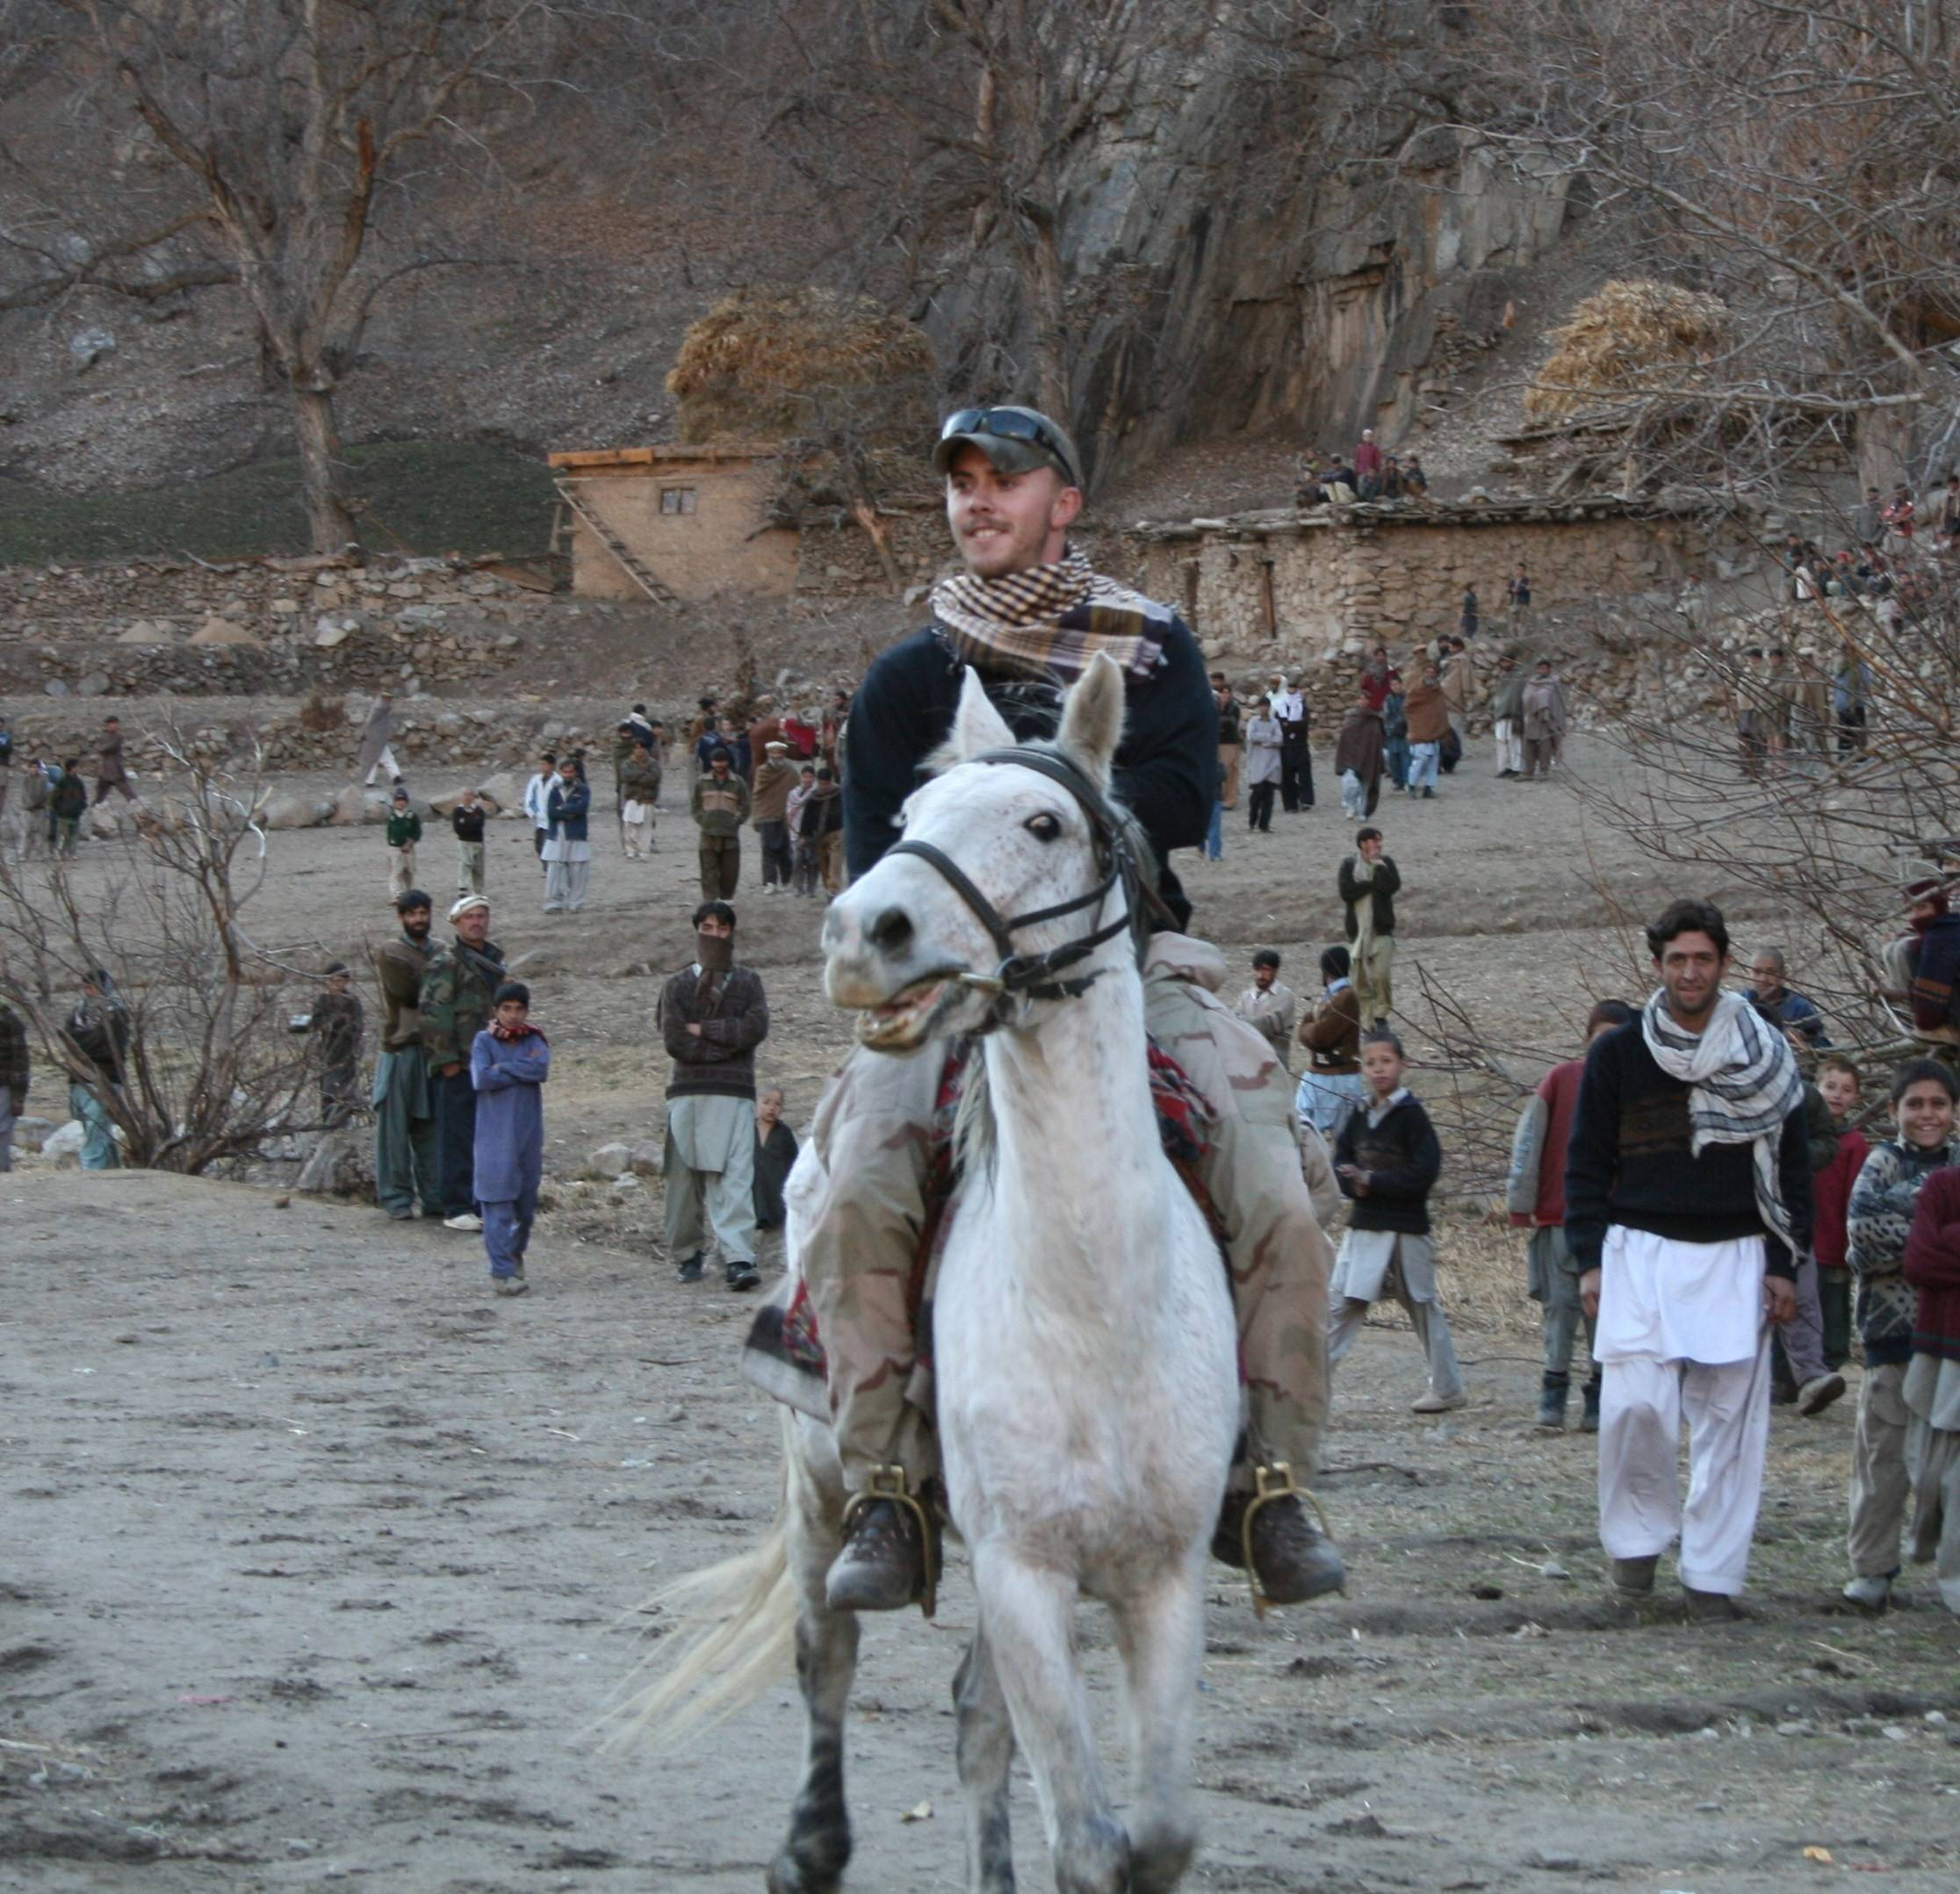 U.S. Army Staff Sgt. Robert Miller learned the native language of Pashto and led Afghan forces into battle.